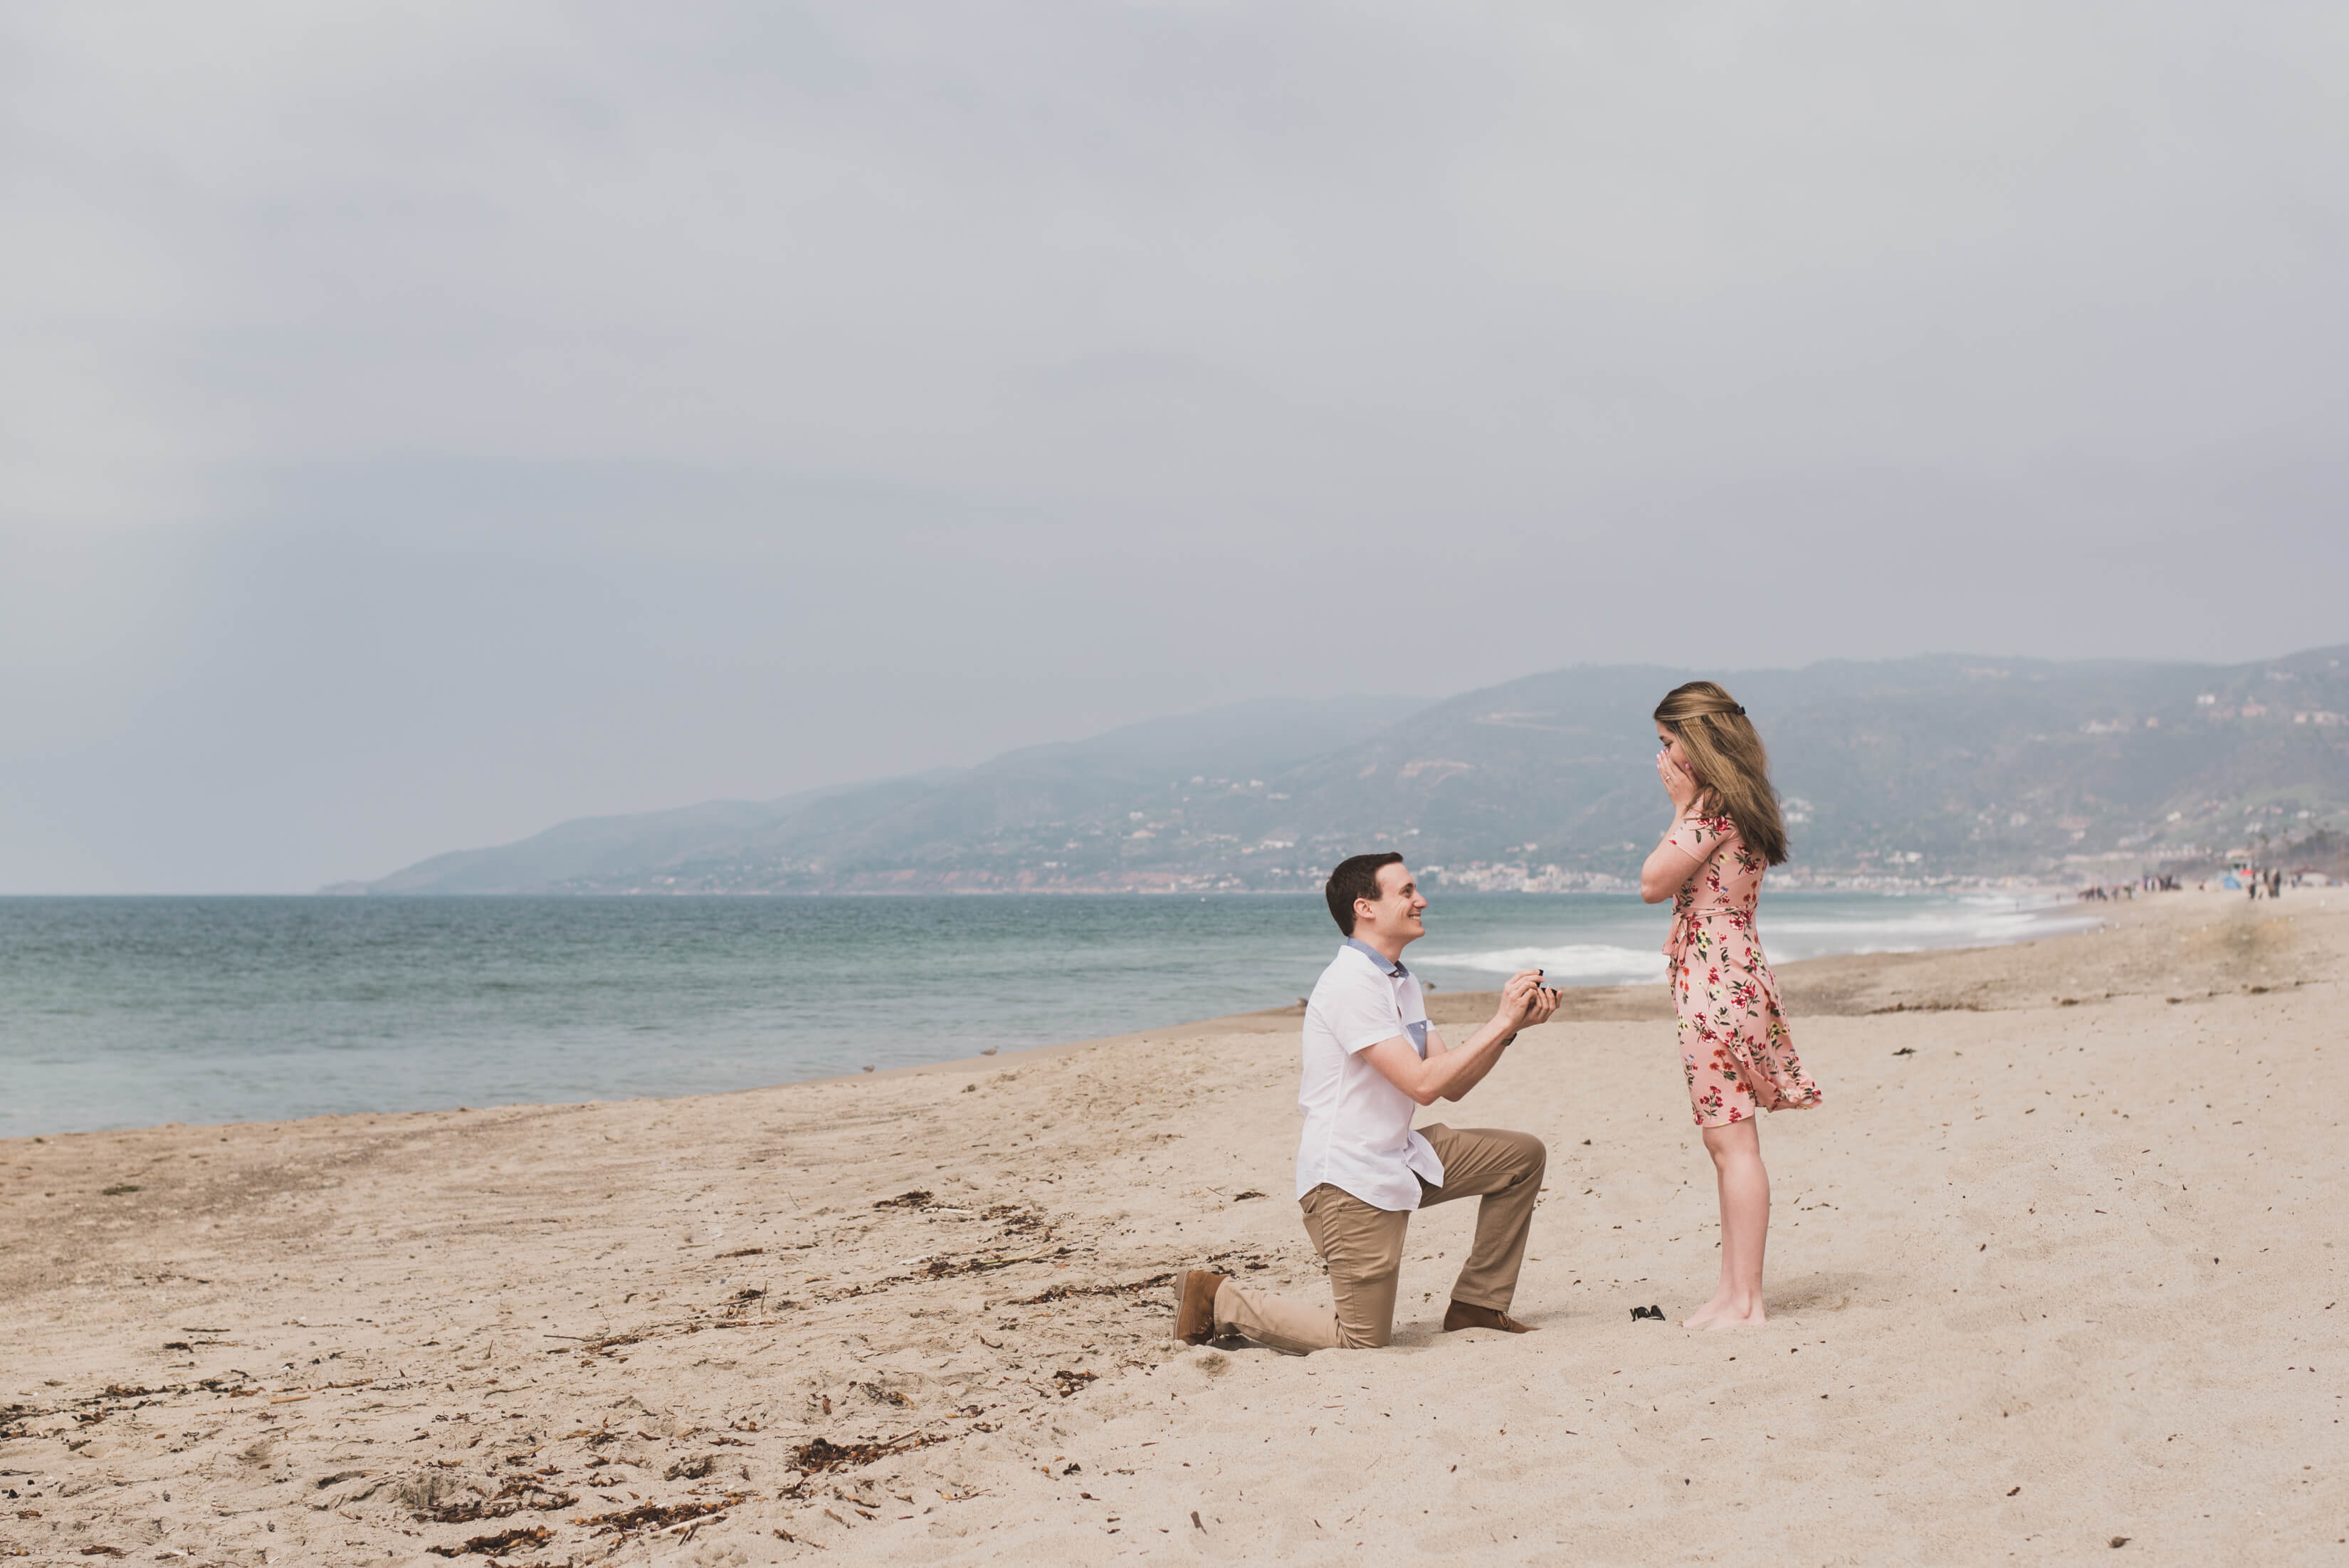 Man proposing to his partner at a beach in Los Angeles, California USA